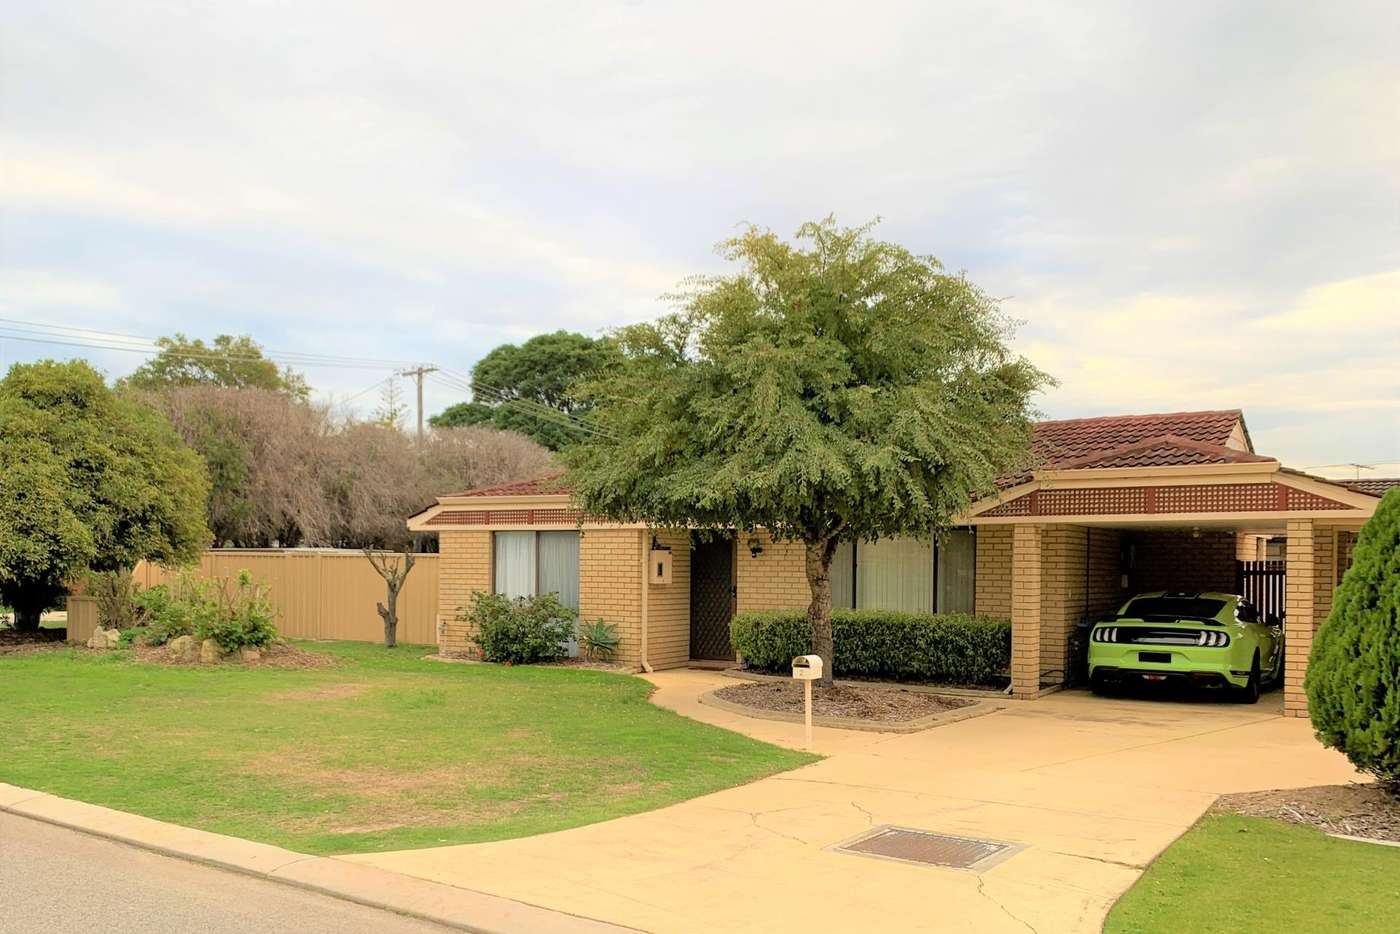 Main view of Homely house listing, 2/2 Stevenson Way, Willetton WA 6155